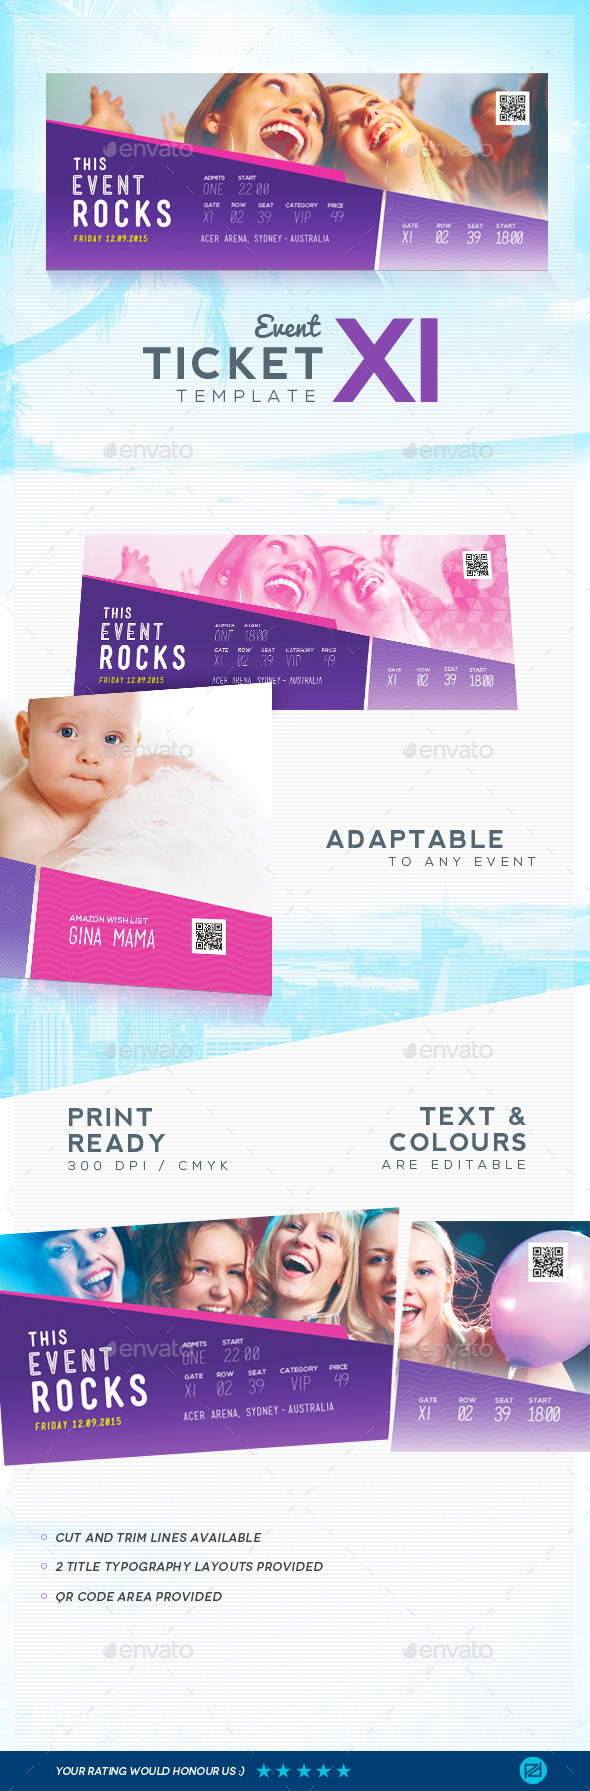 GraphicRiver Event Ticket Template 11 9223252